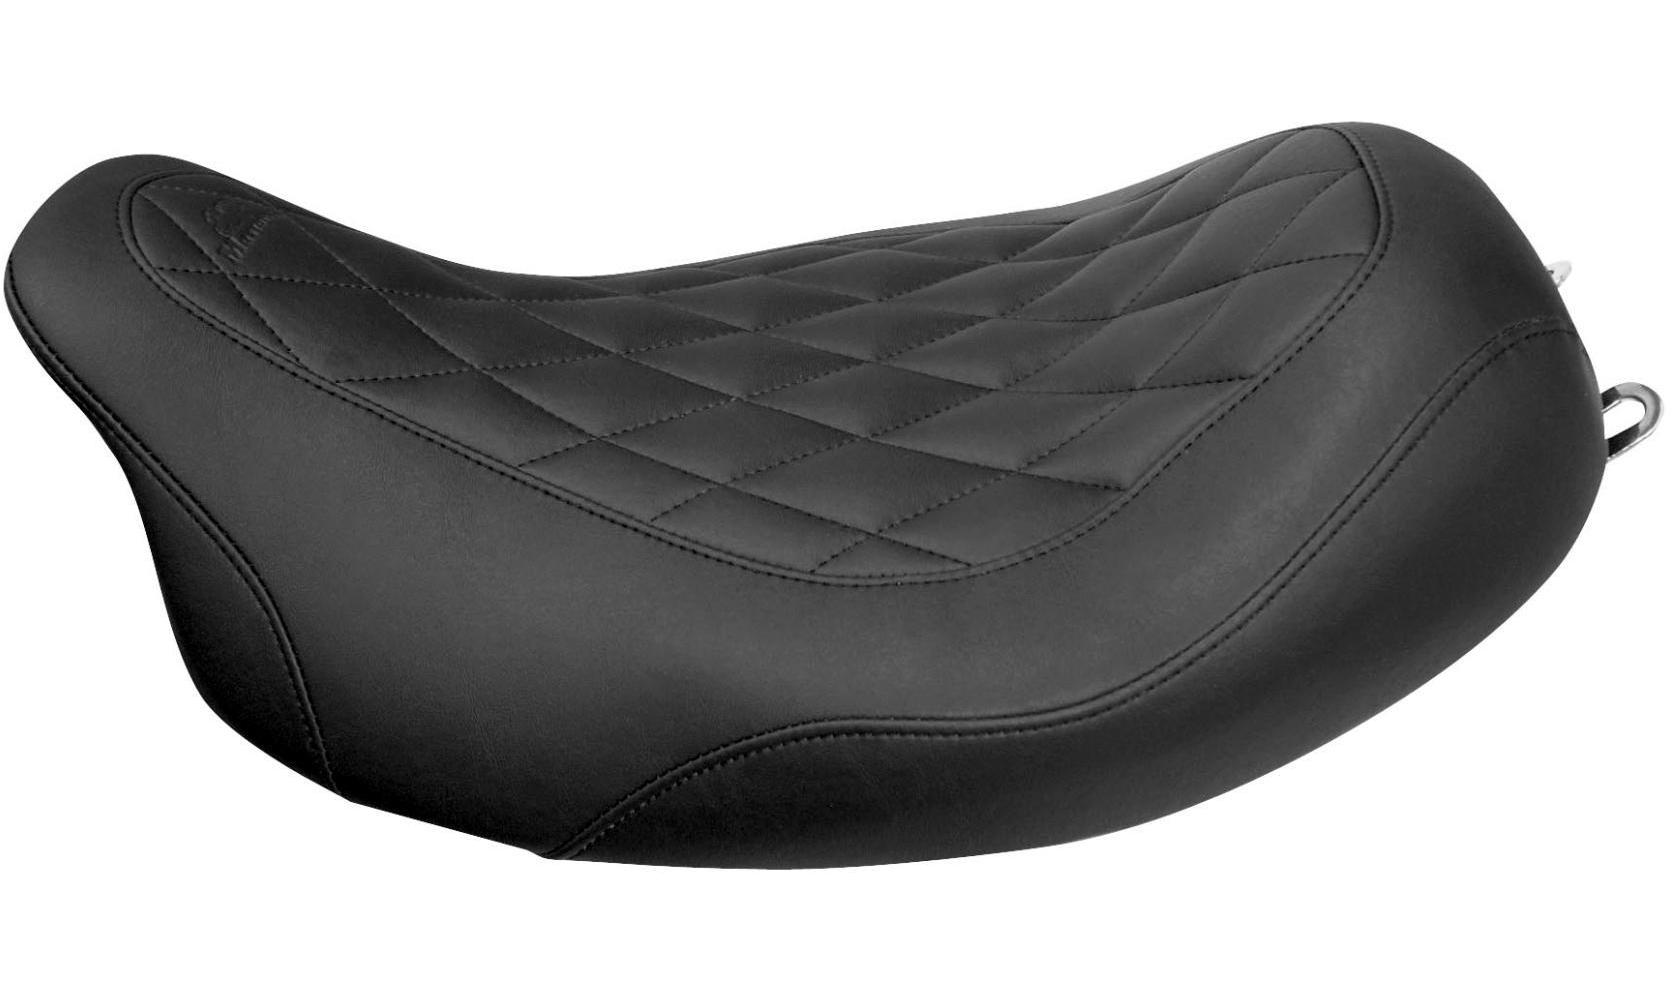 Mustang 76735 Wide Tripper Solo Motorcycle Seat with Diamond Stitching for Harley-Davidson 1997-2007 Black